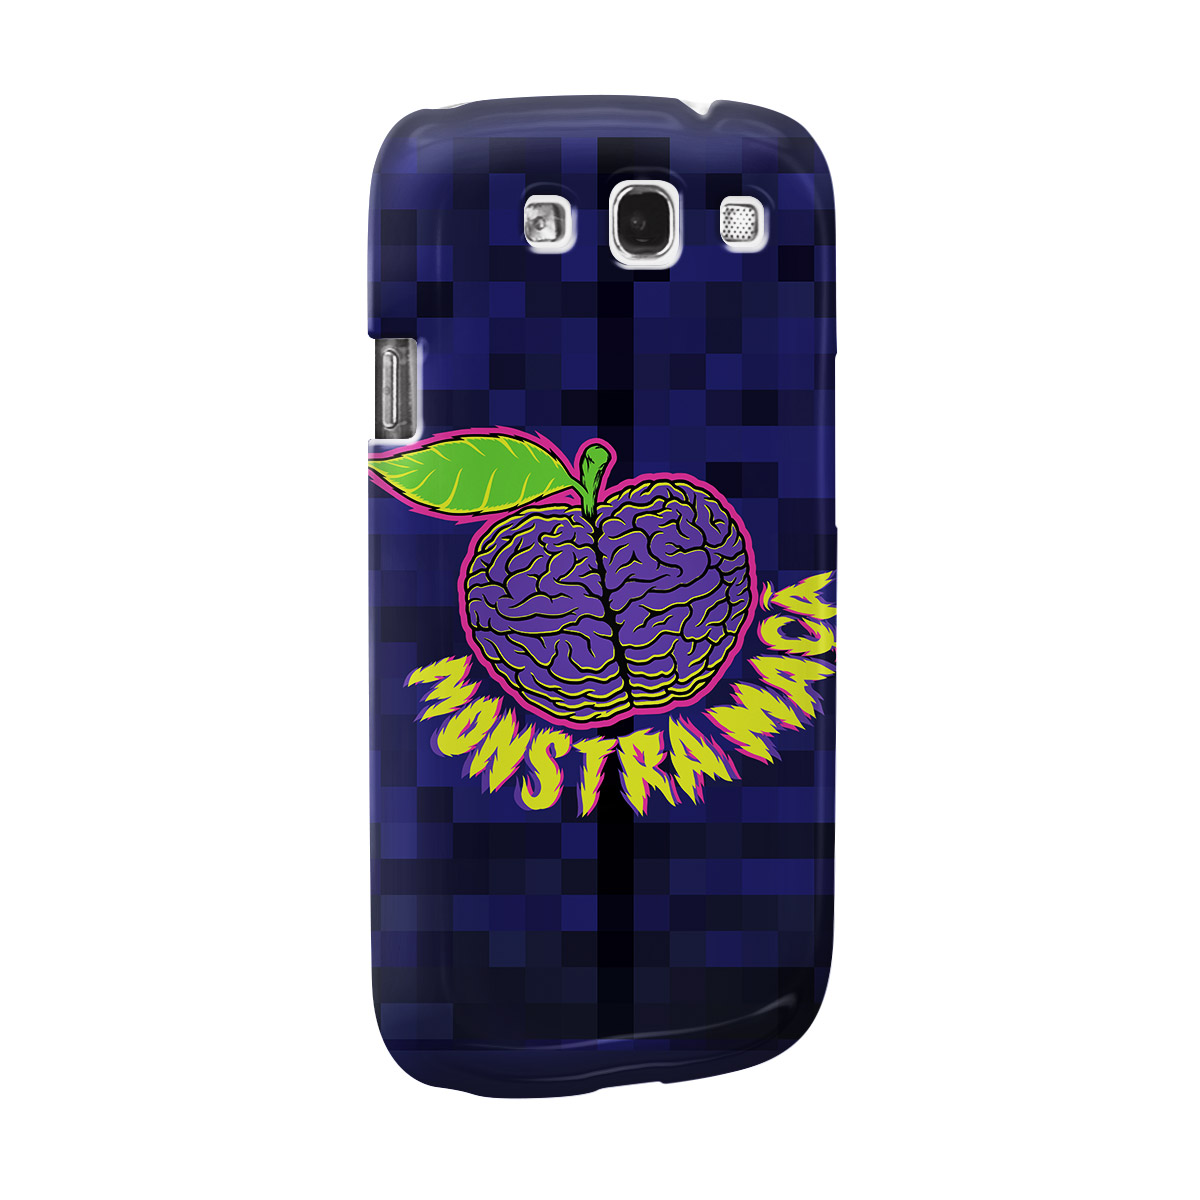 Capa para Samsung Galaxy S3 Monstra Maçã Brains